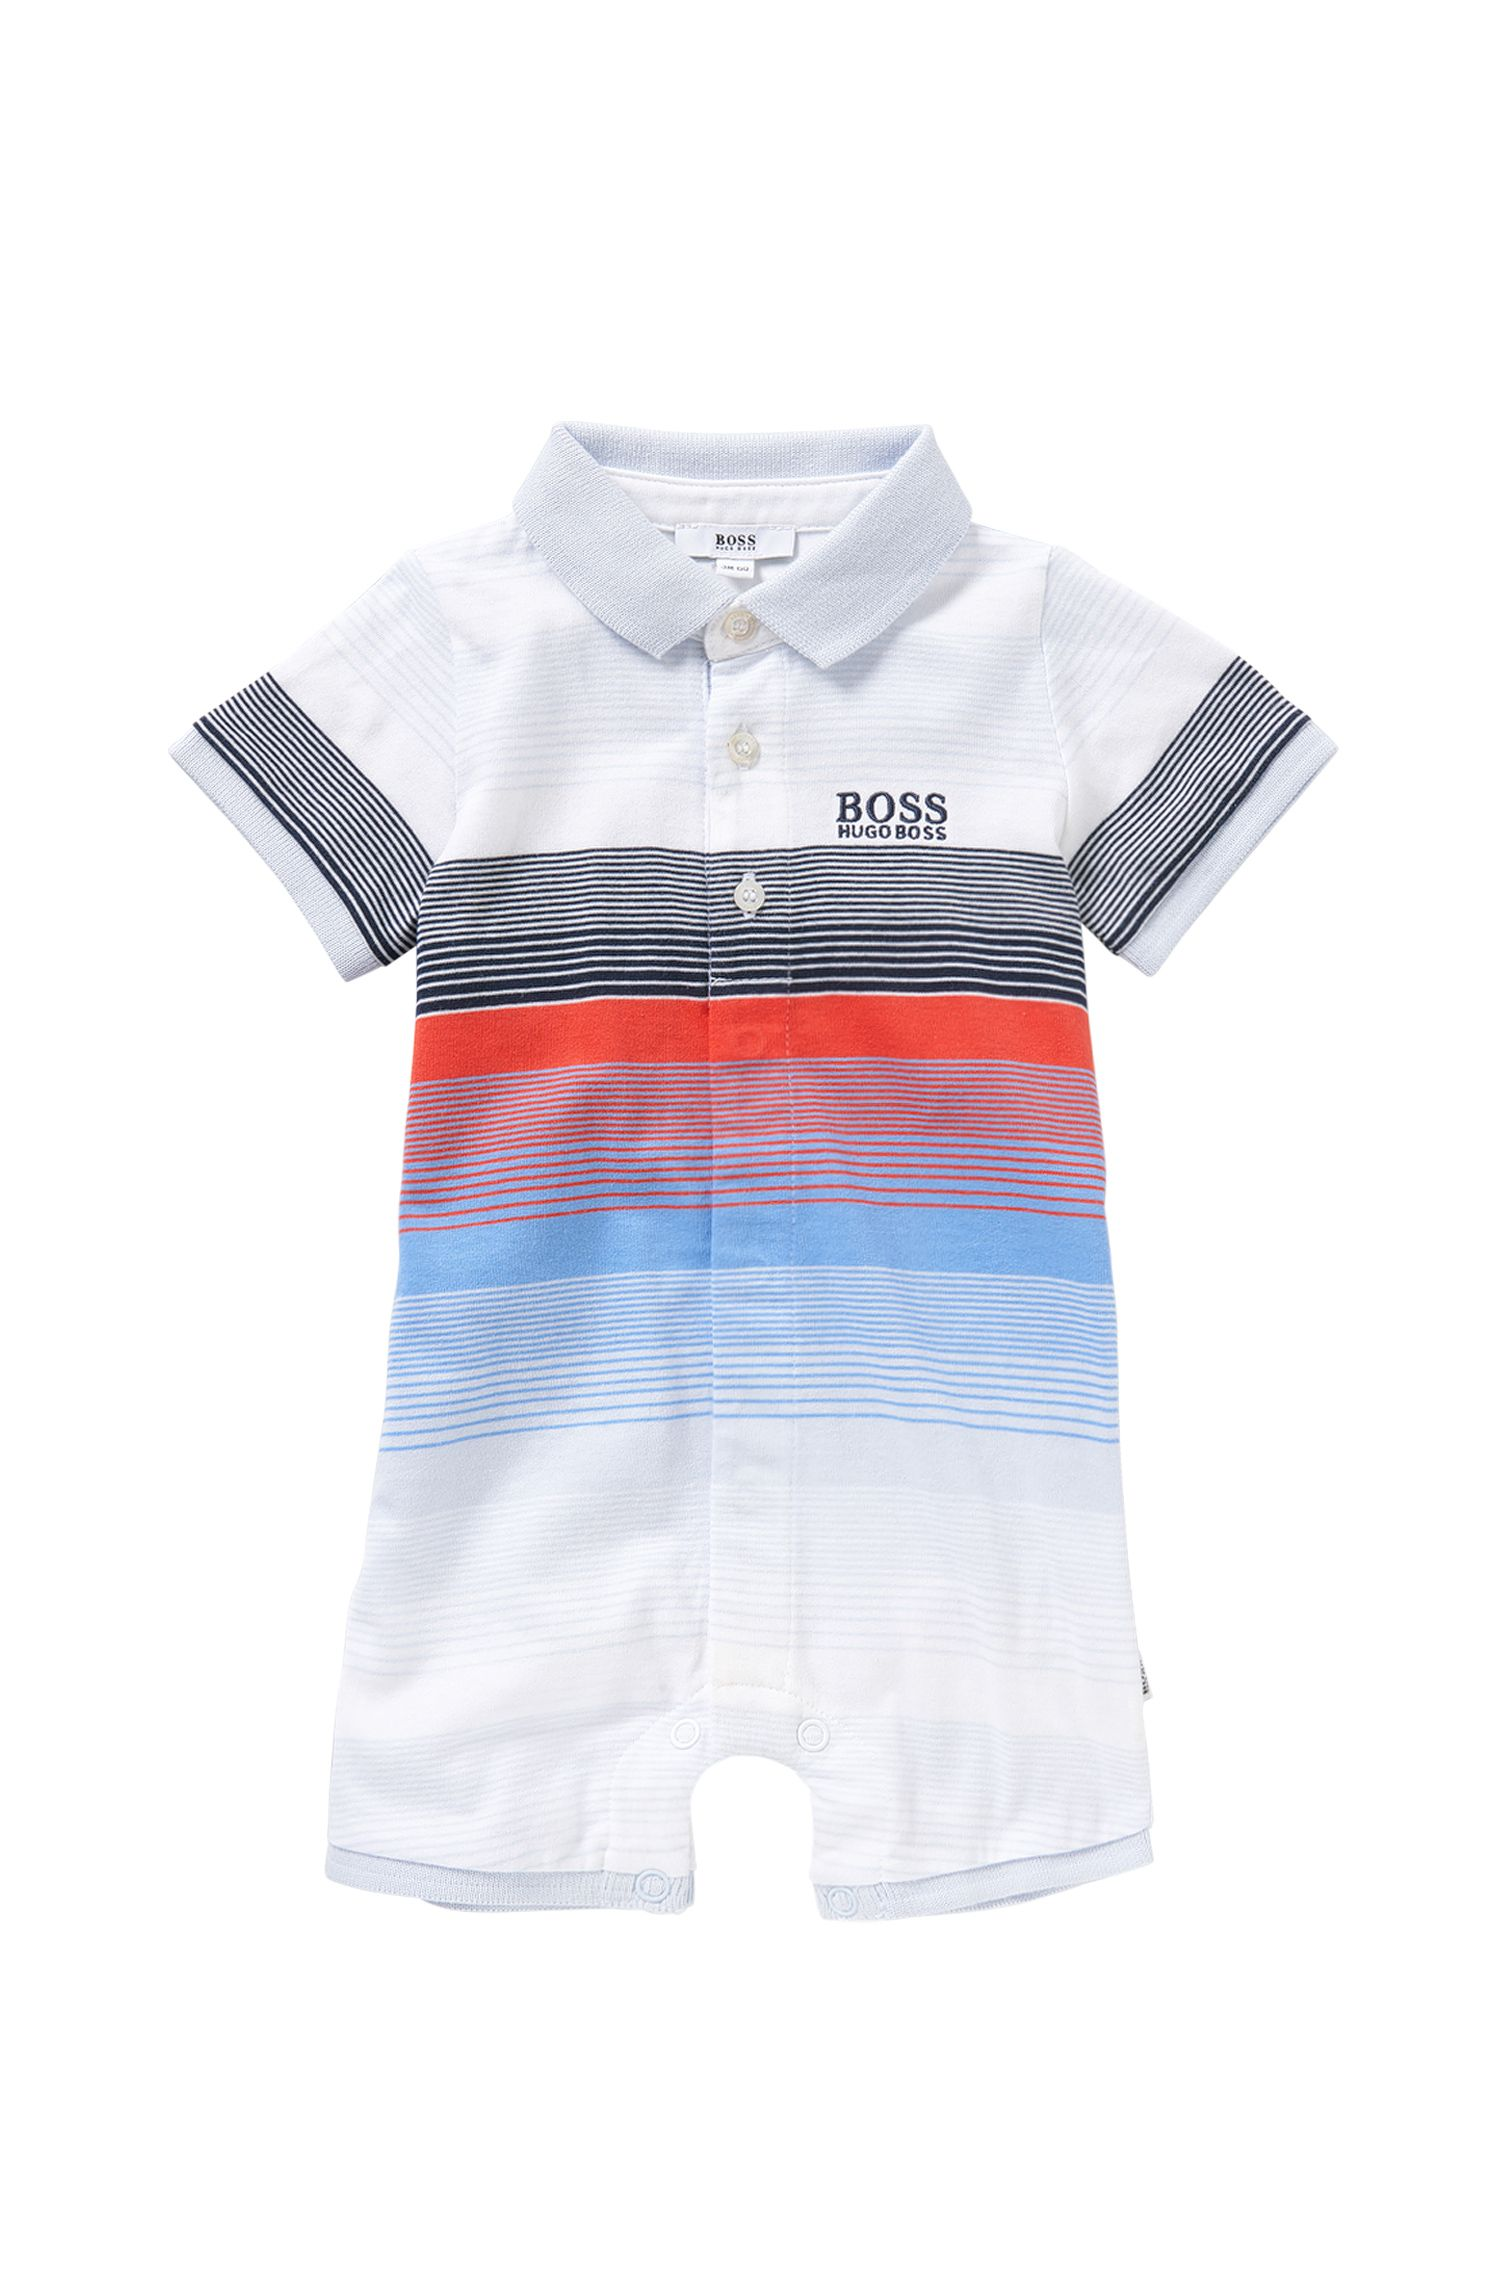 Multicoloured striped newborns' playsuit in cotton: 'J94159'